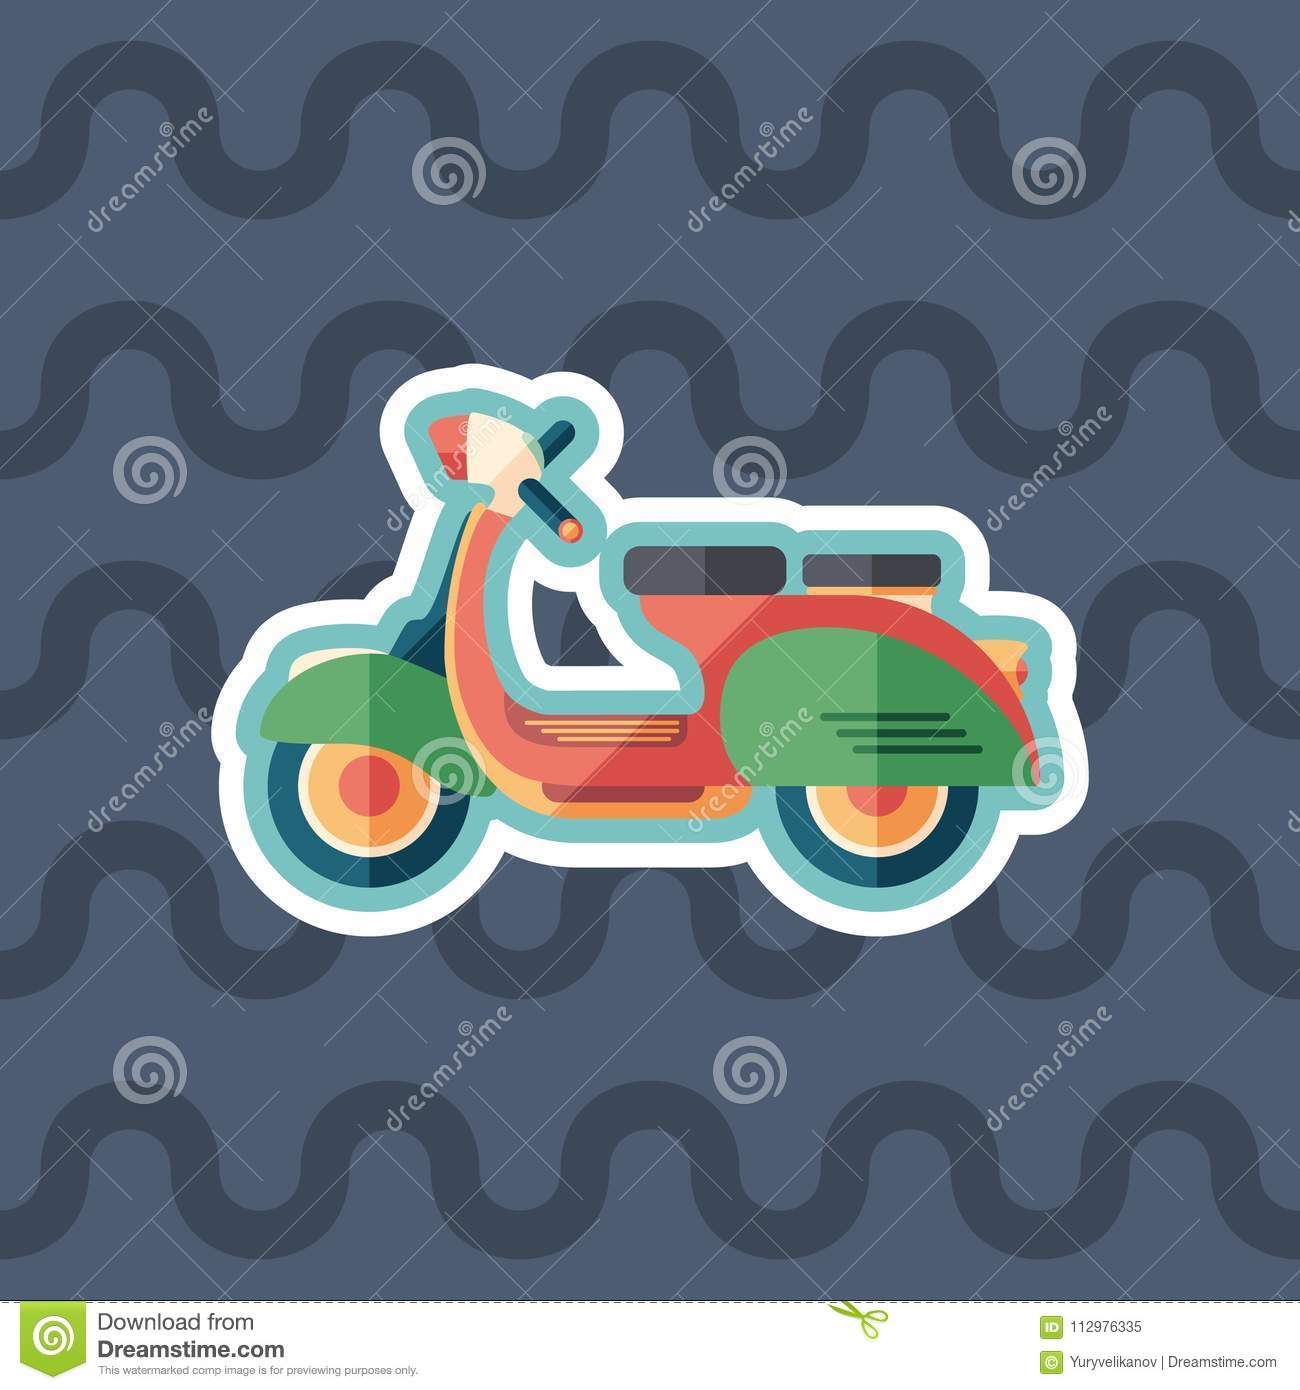 Vintage urban scooter sticker flat icon with color background